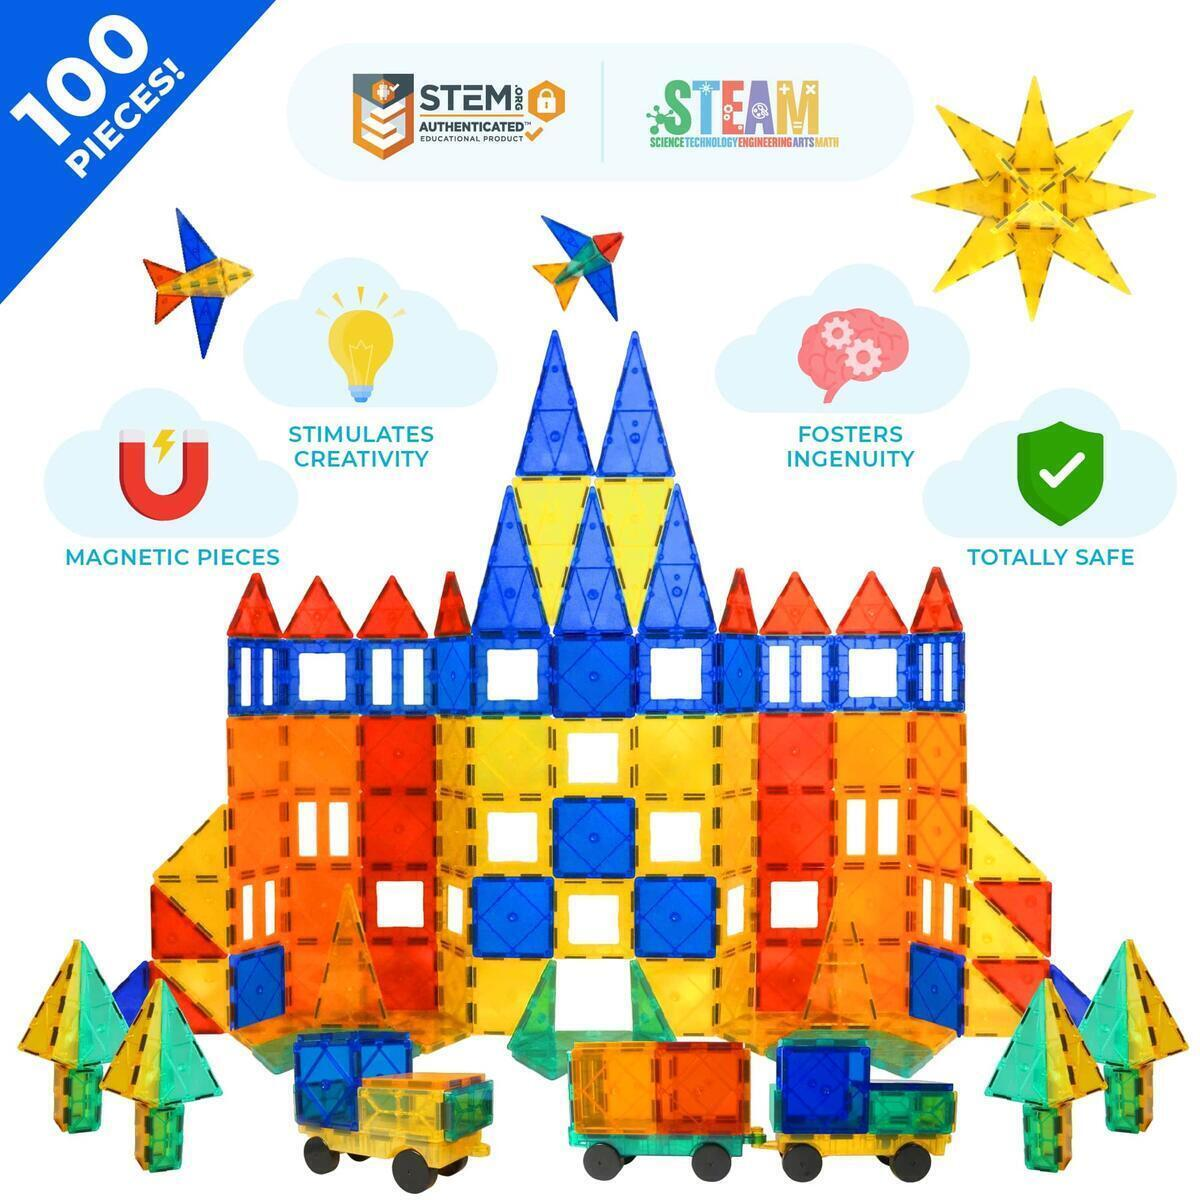 Tytan Tiles Magnets For Kids & Building Toys - STEM Certified Magnetic Blocks Set For Boys/Girls Fun, Creative, Educational - 100 Piece Set